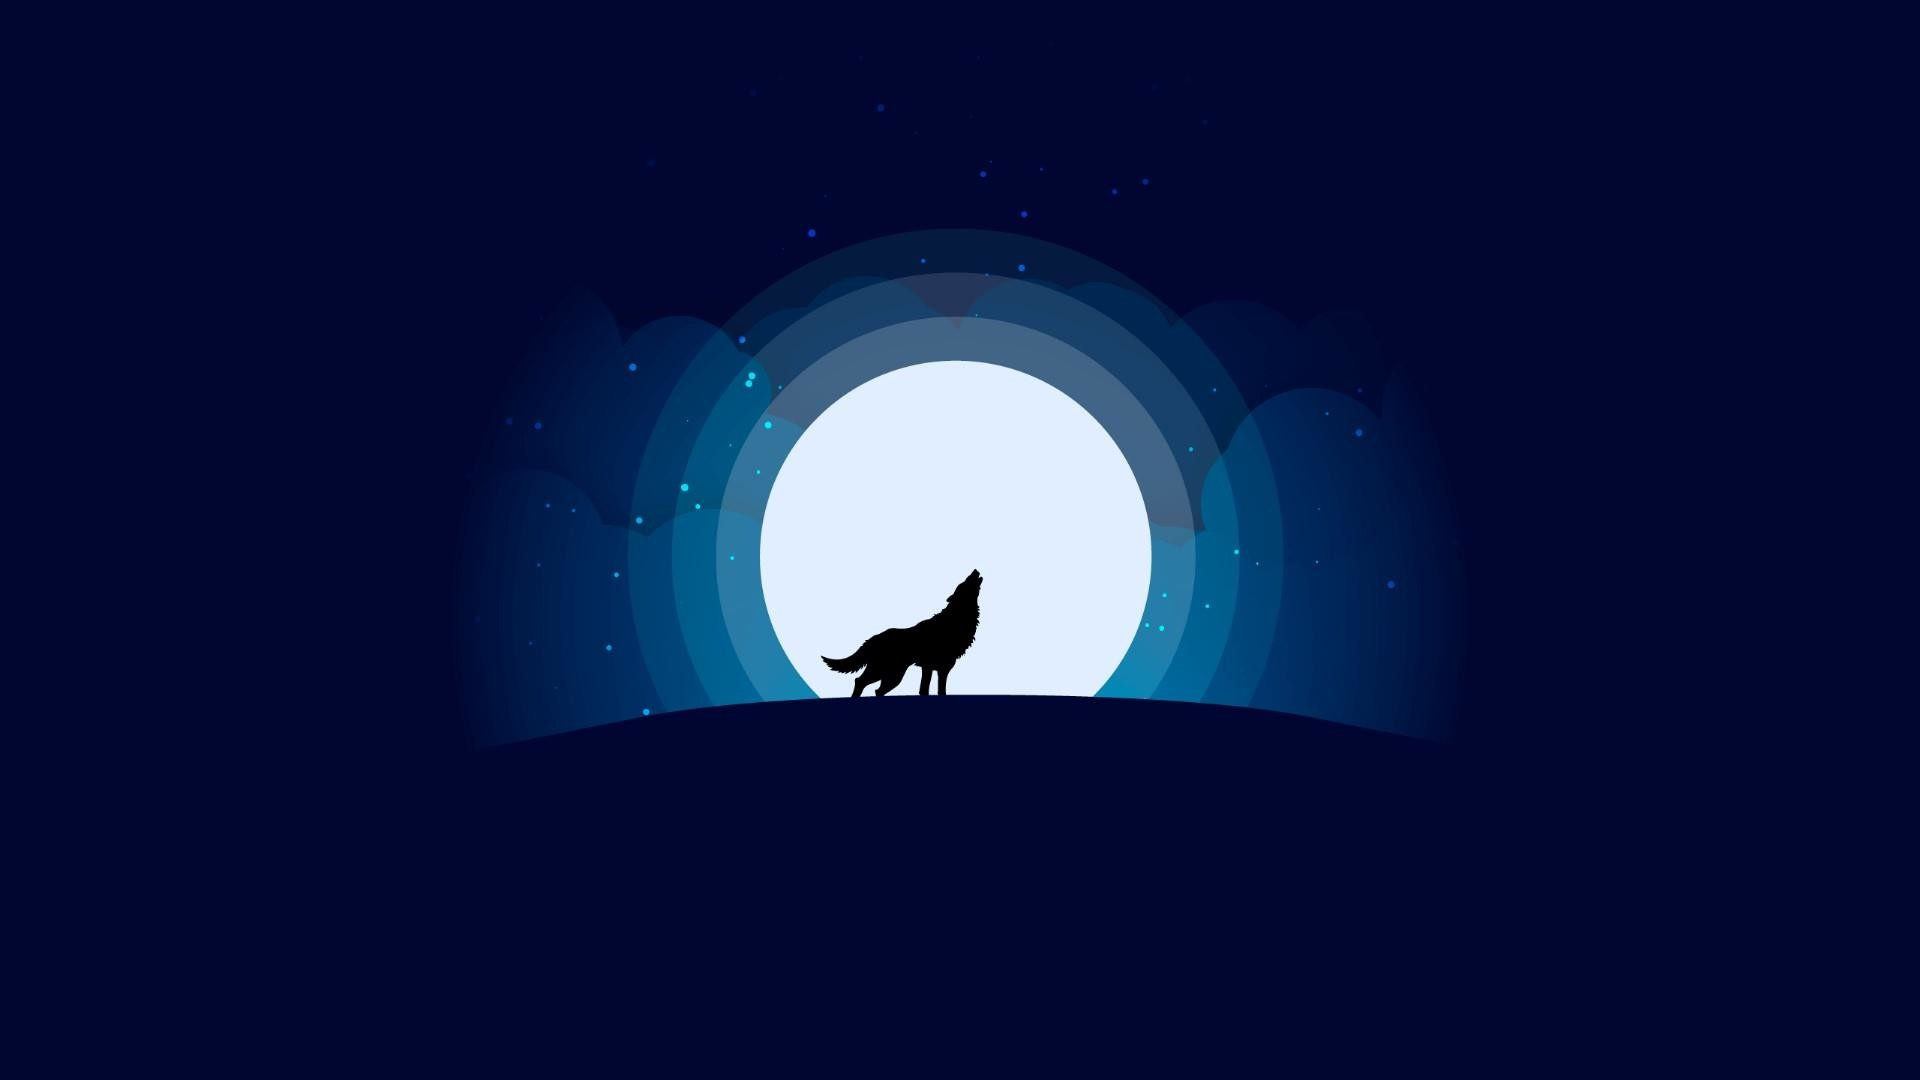 Res: 1920x1080, Wolf With Full Moon - Minimalist Design Wallpaper | Wallpaper Studio 10 |  Tens of thousands HD and UltraHD wallpapers for Android, Windows and Xbox